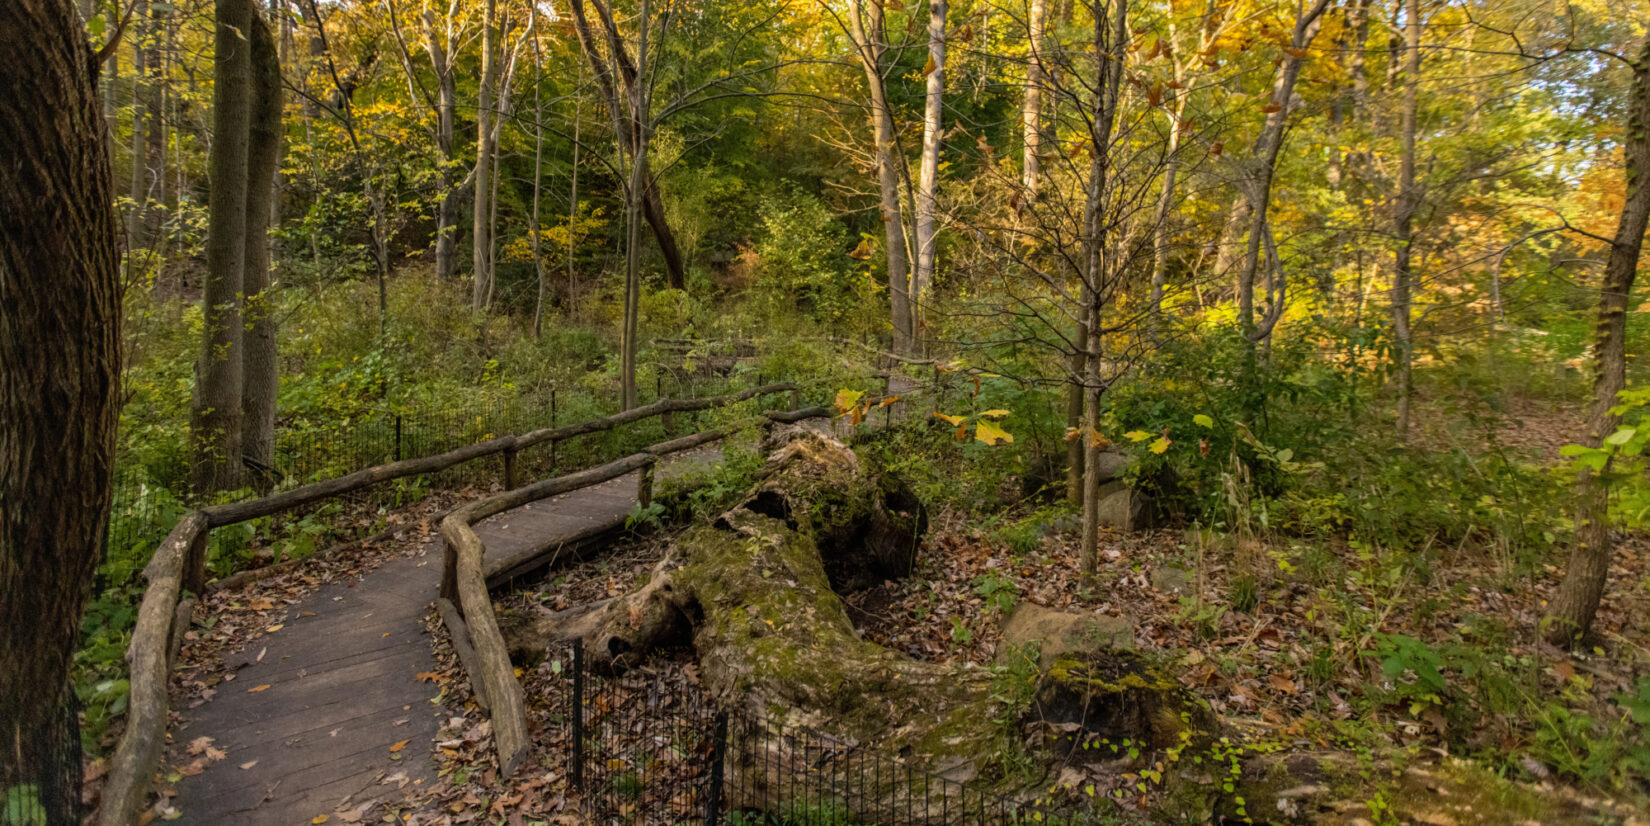 Rustic fencing defines the trail through the Ravine, seen in autumn